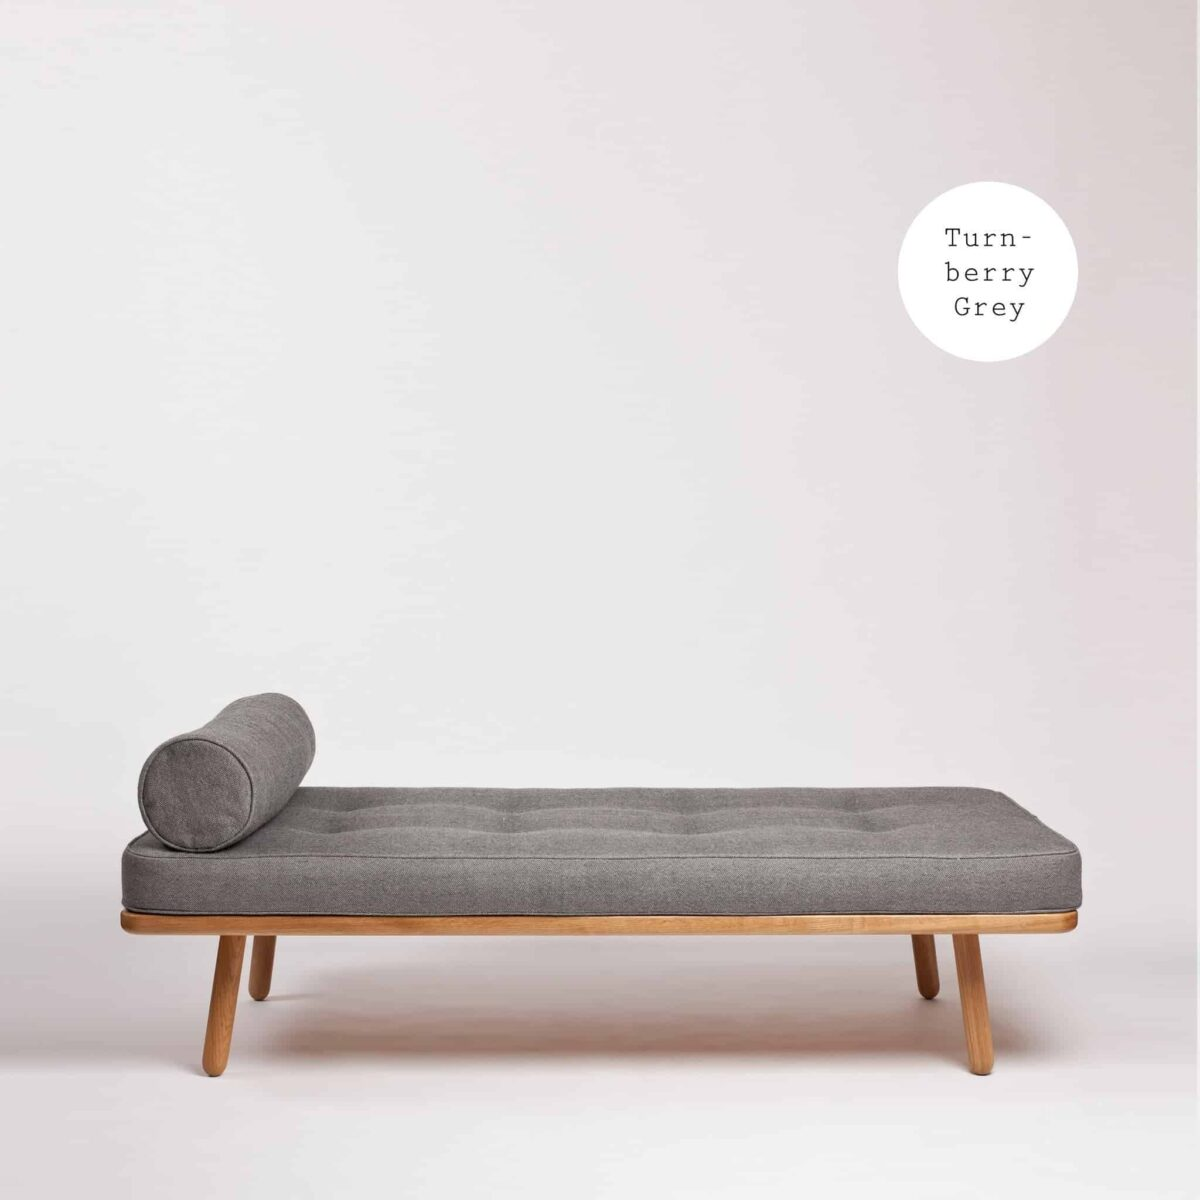 another-country-day-bed-one-oak-natural–mattress-1-bolster-turnberry-grey-001